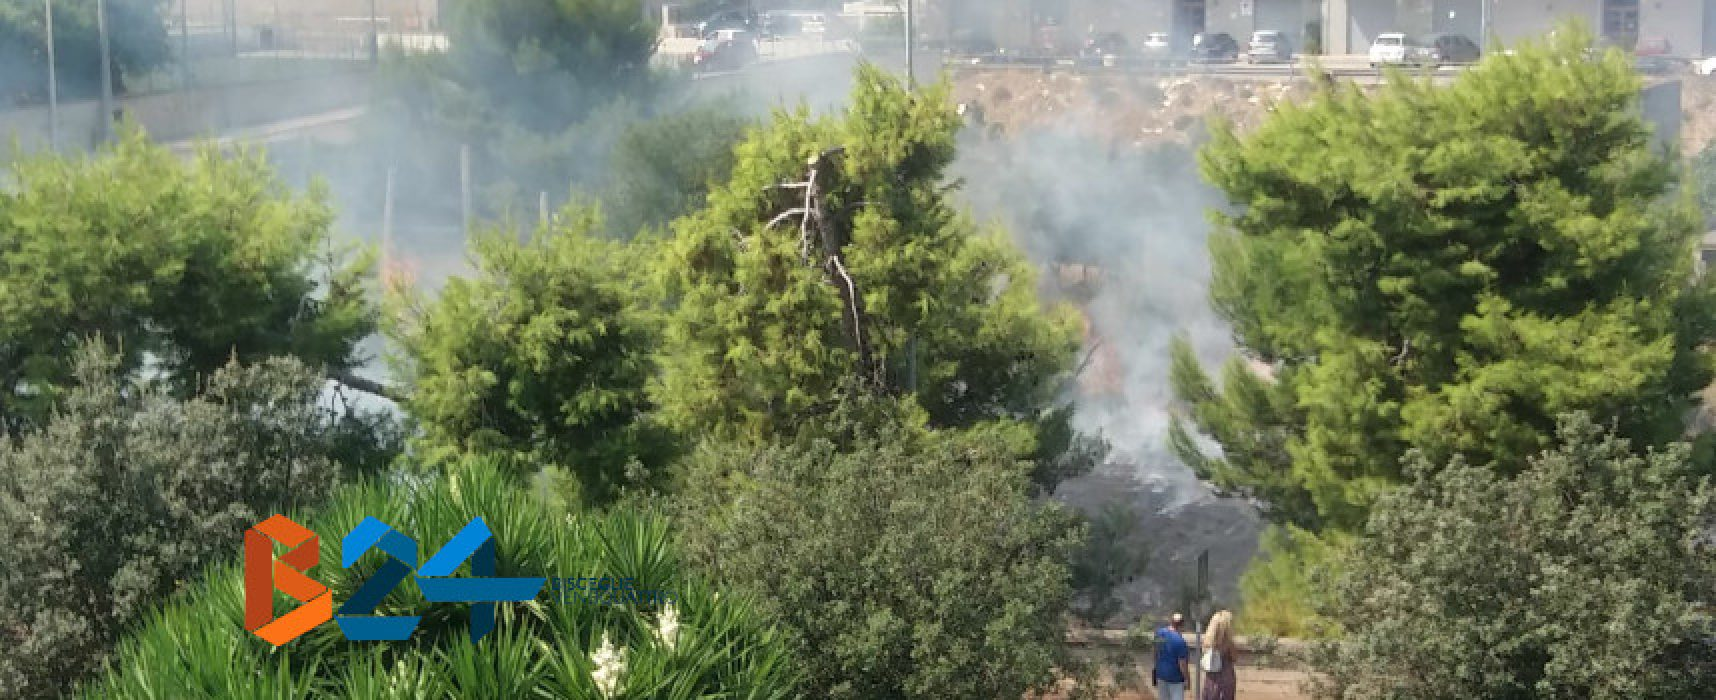 Incendio in un terreno in via Cala dell'Arciprete /VIDEO